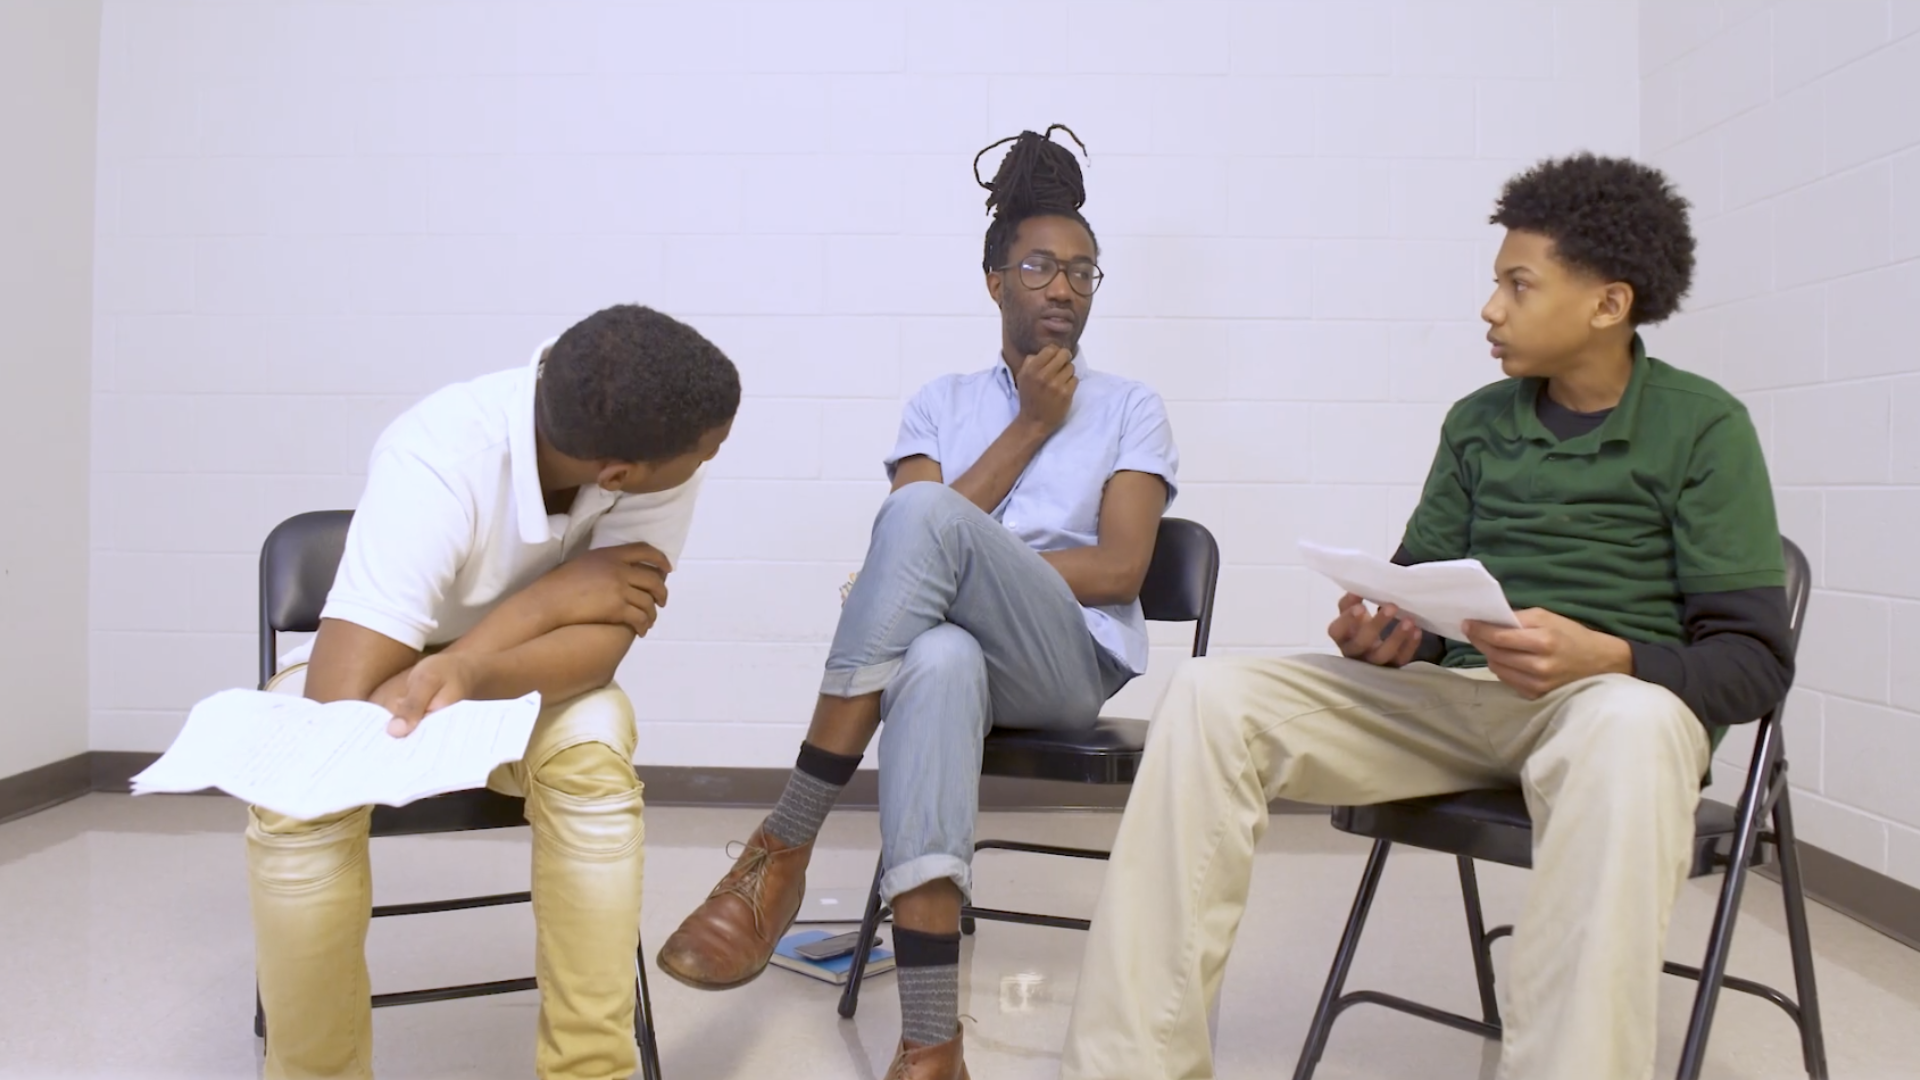 Black male instructor with a bun, listening to two black teens holding scripts